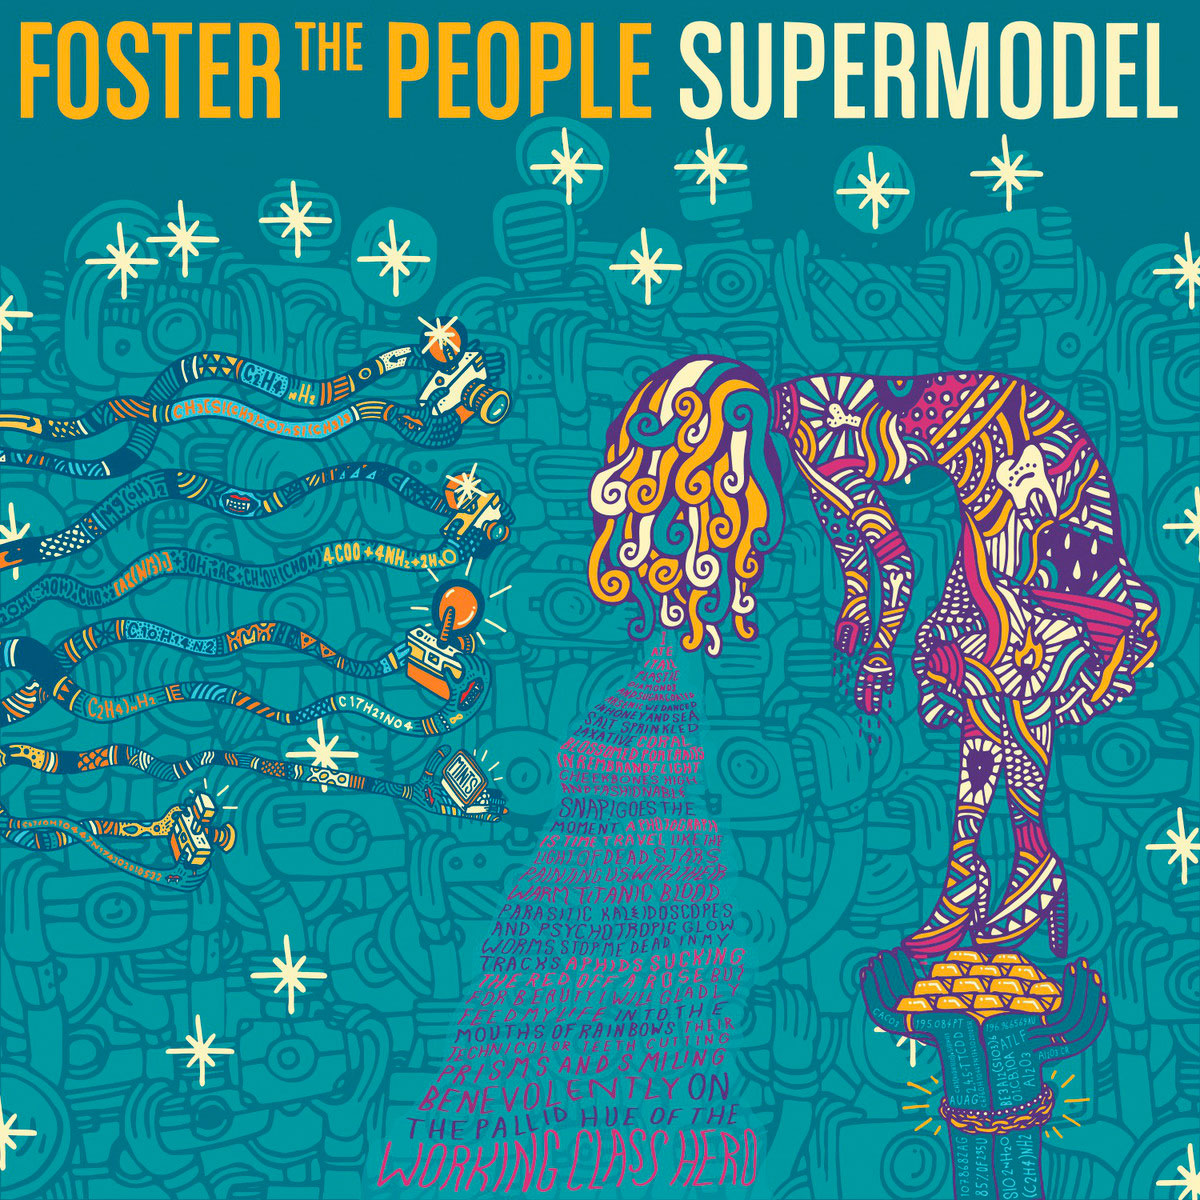 Portada del nuevo disco de Foster the People: Supermodel